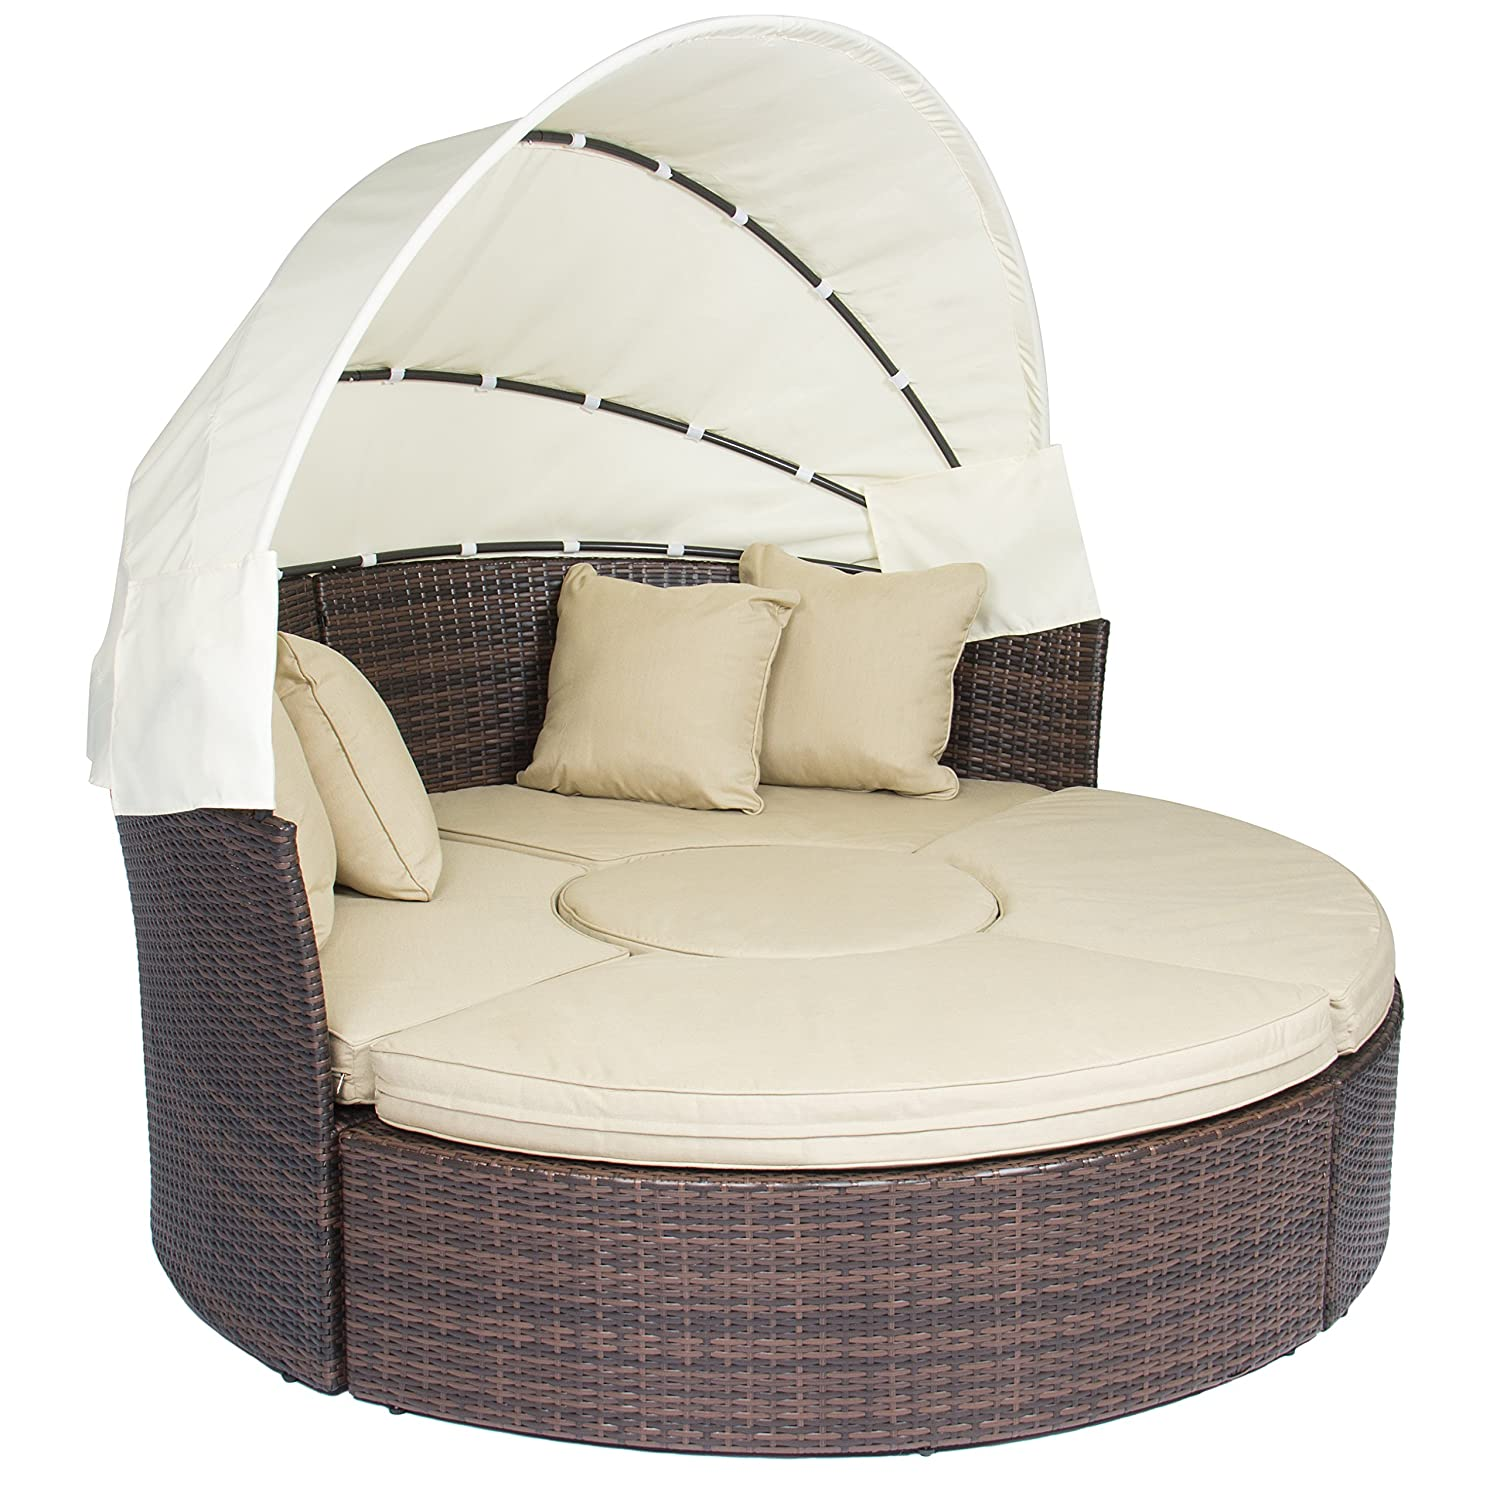 amazoncom outdoor patio sofa furniture round retractable canopy daybed brown wicker rattan patio lawn garden